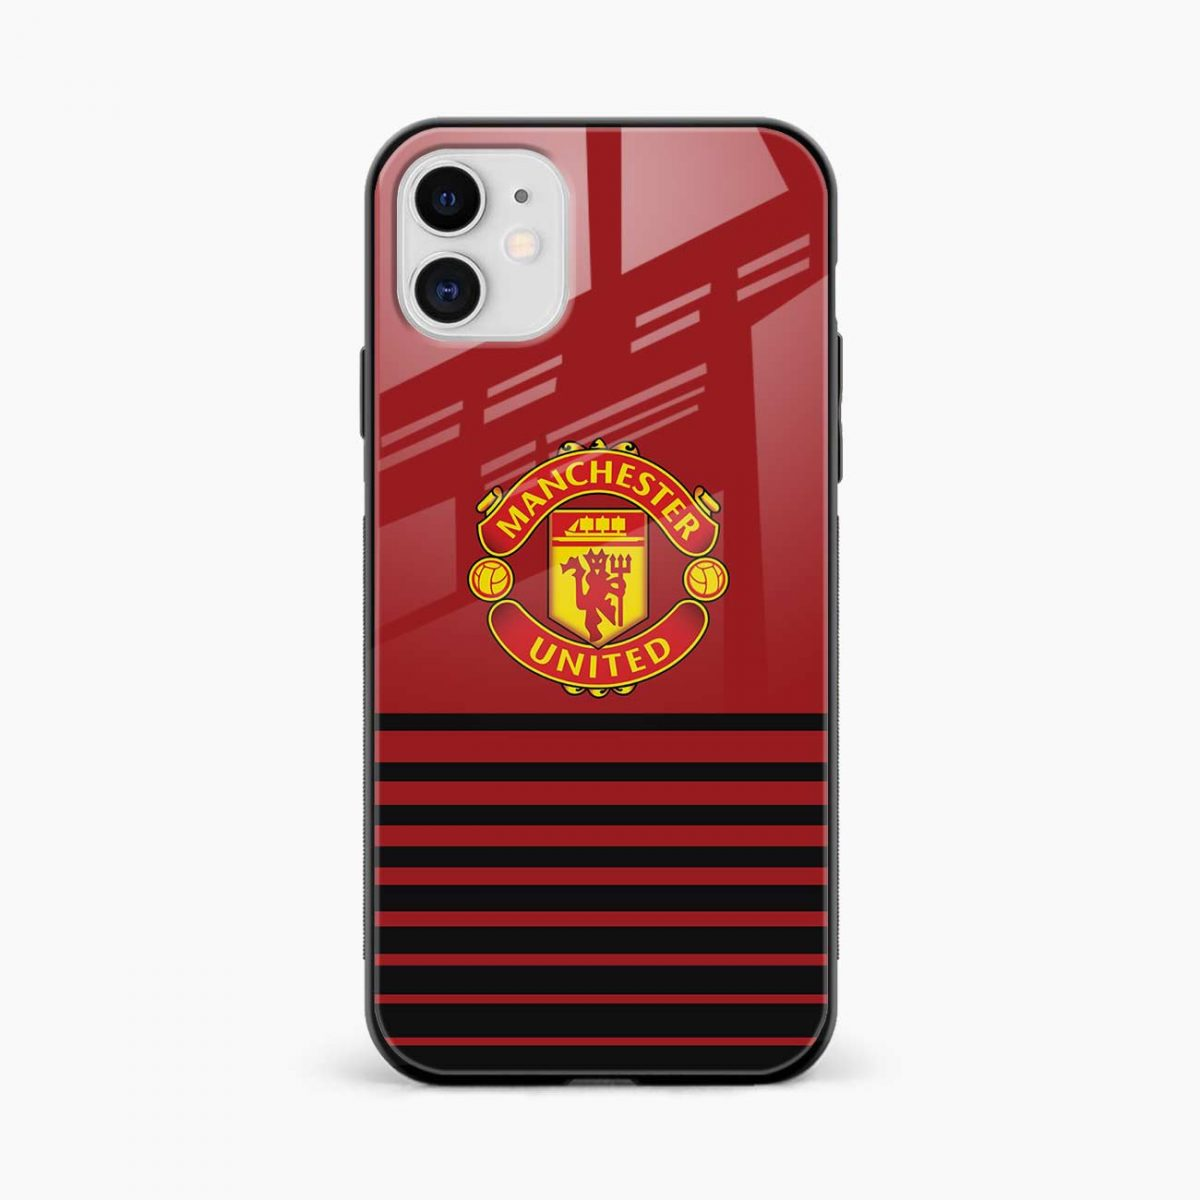 manchester united iphone back cover front view